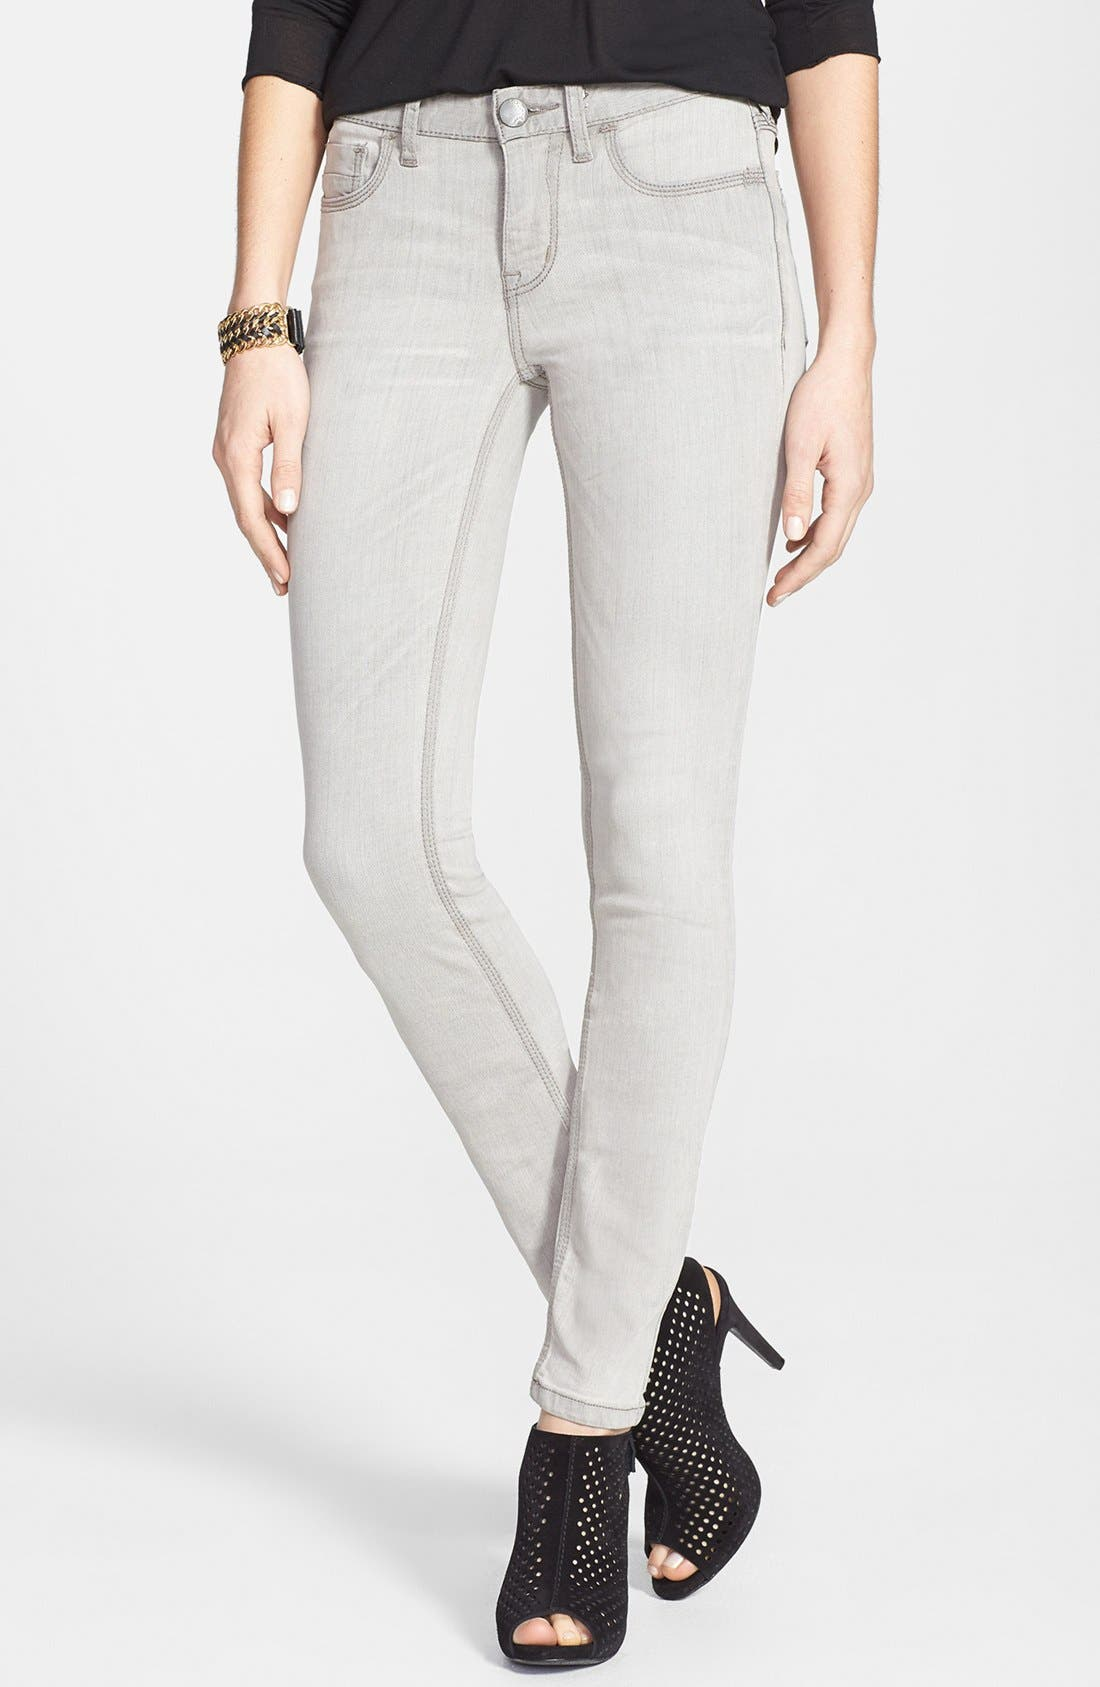 Main Image - Free People Stretch Skinny Jeans (Cloudy Grey)